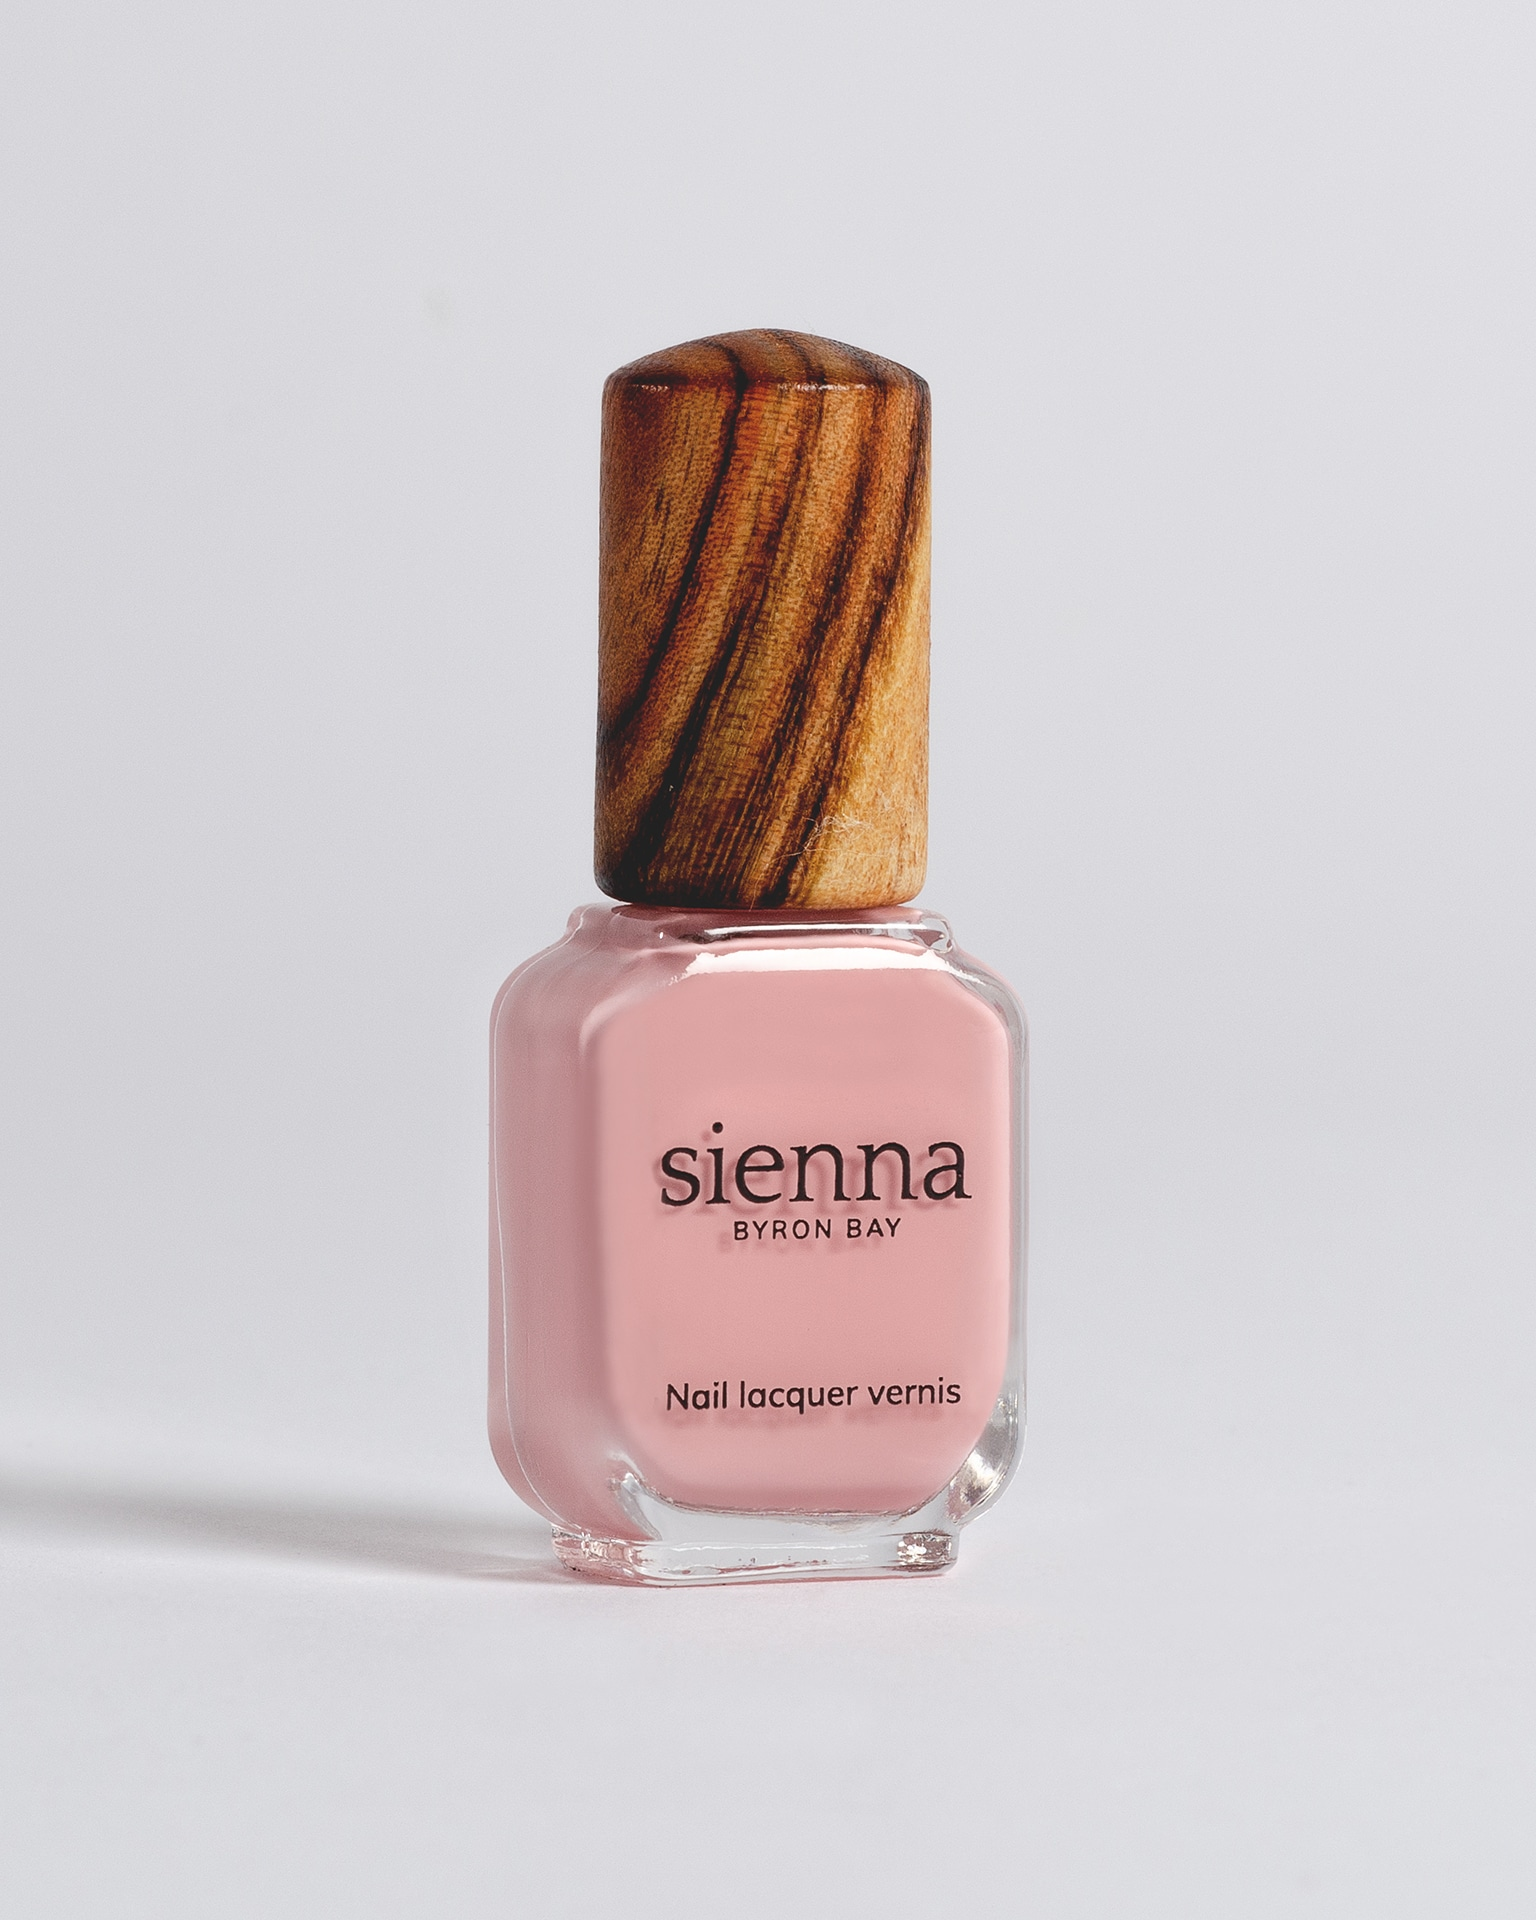 light pink nail polish bottle with timber cap by sienna